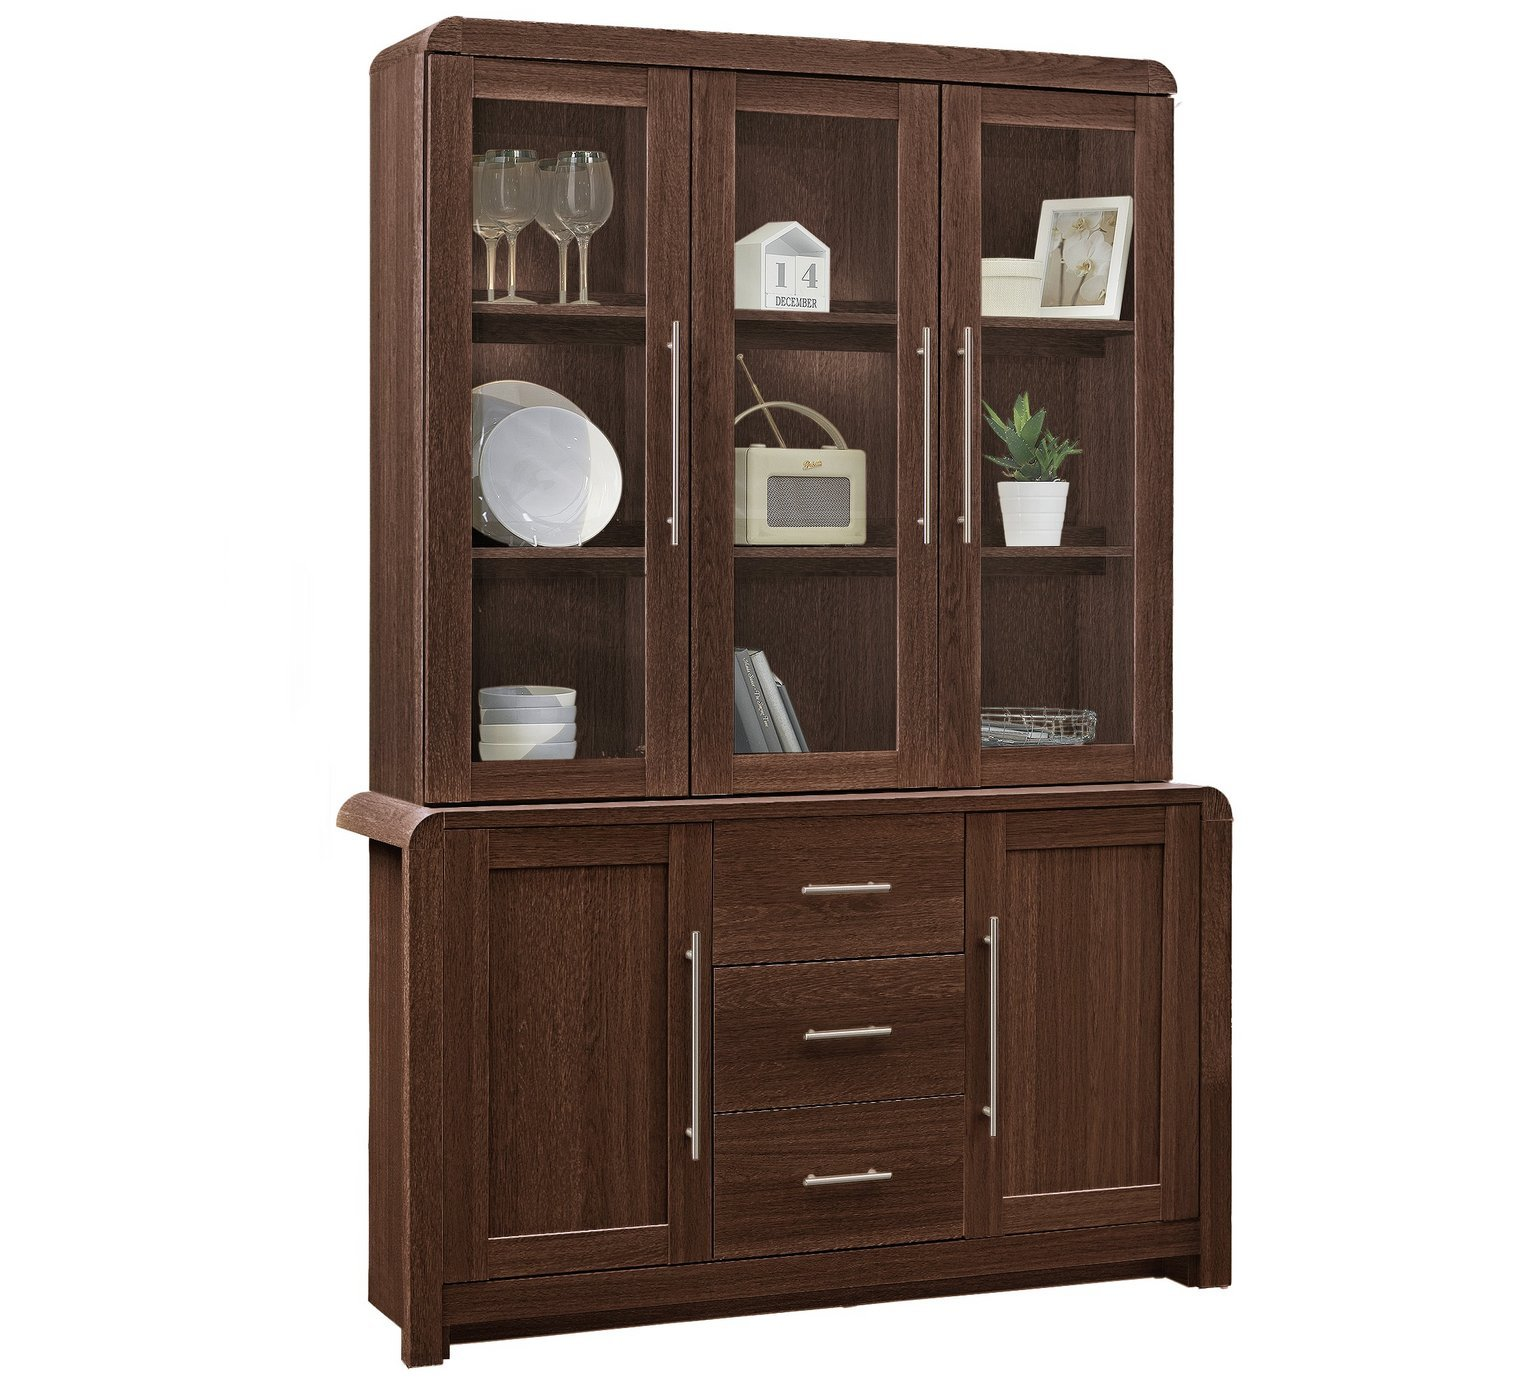 SALE On Heart Of House Elford 5 Dr 3 Drawer Cabinet